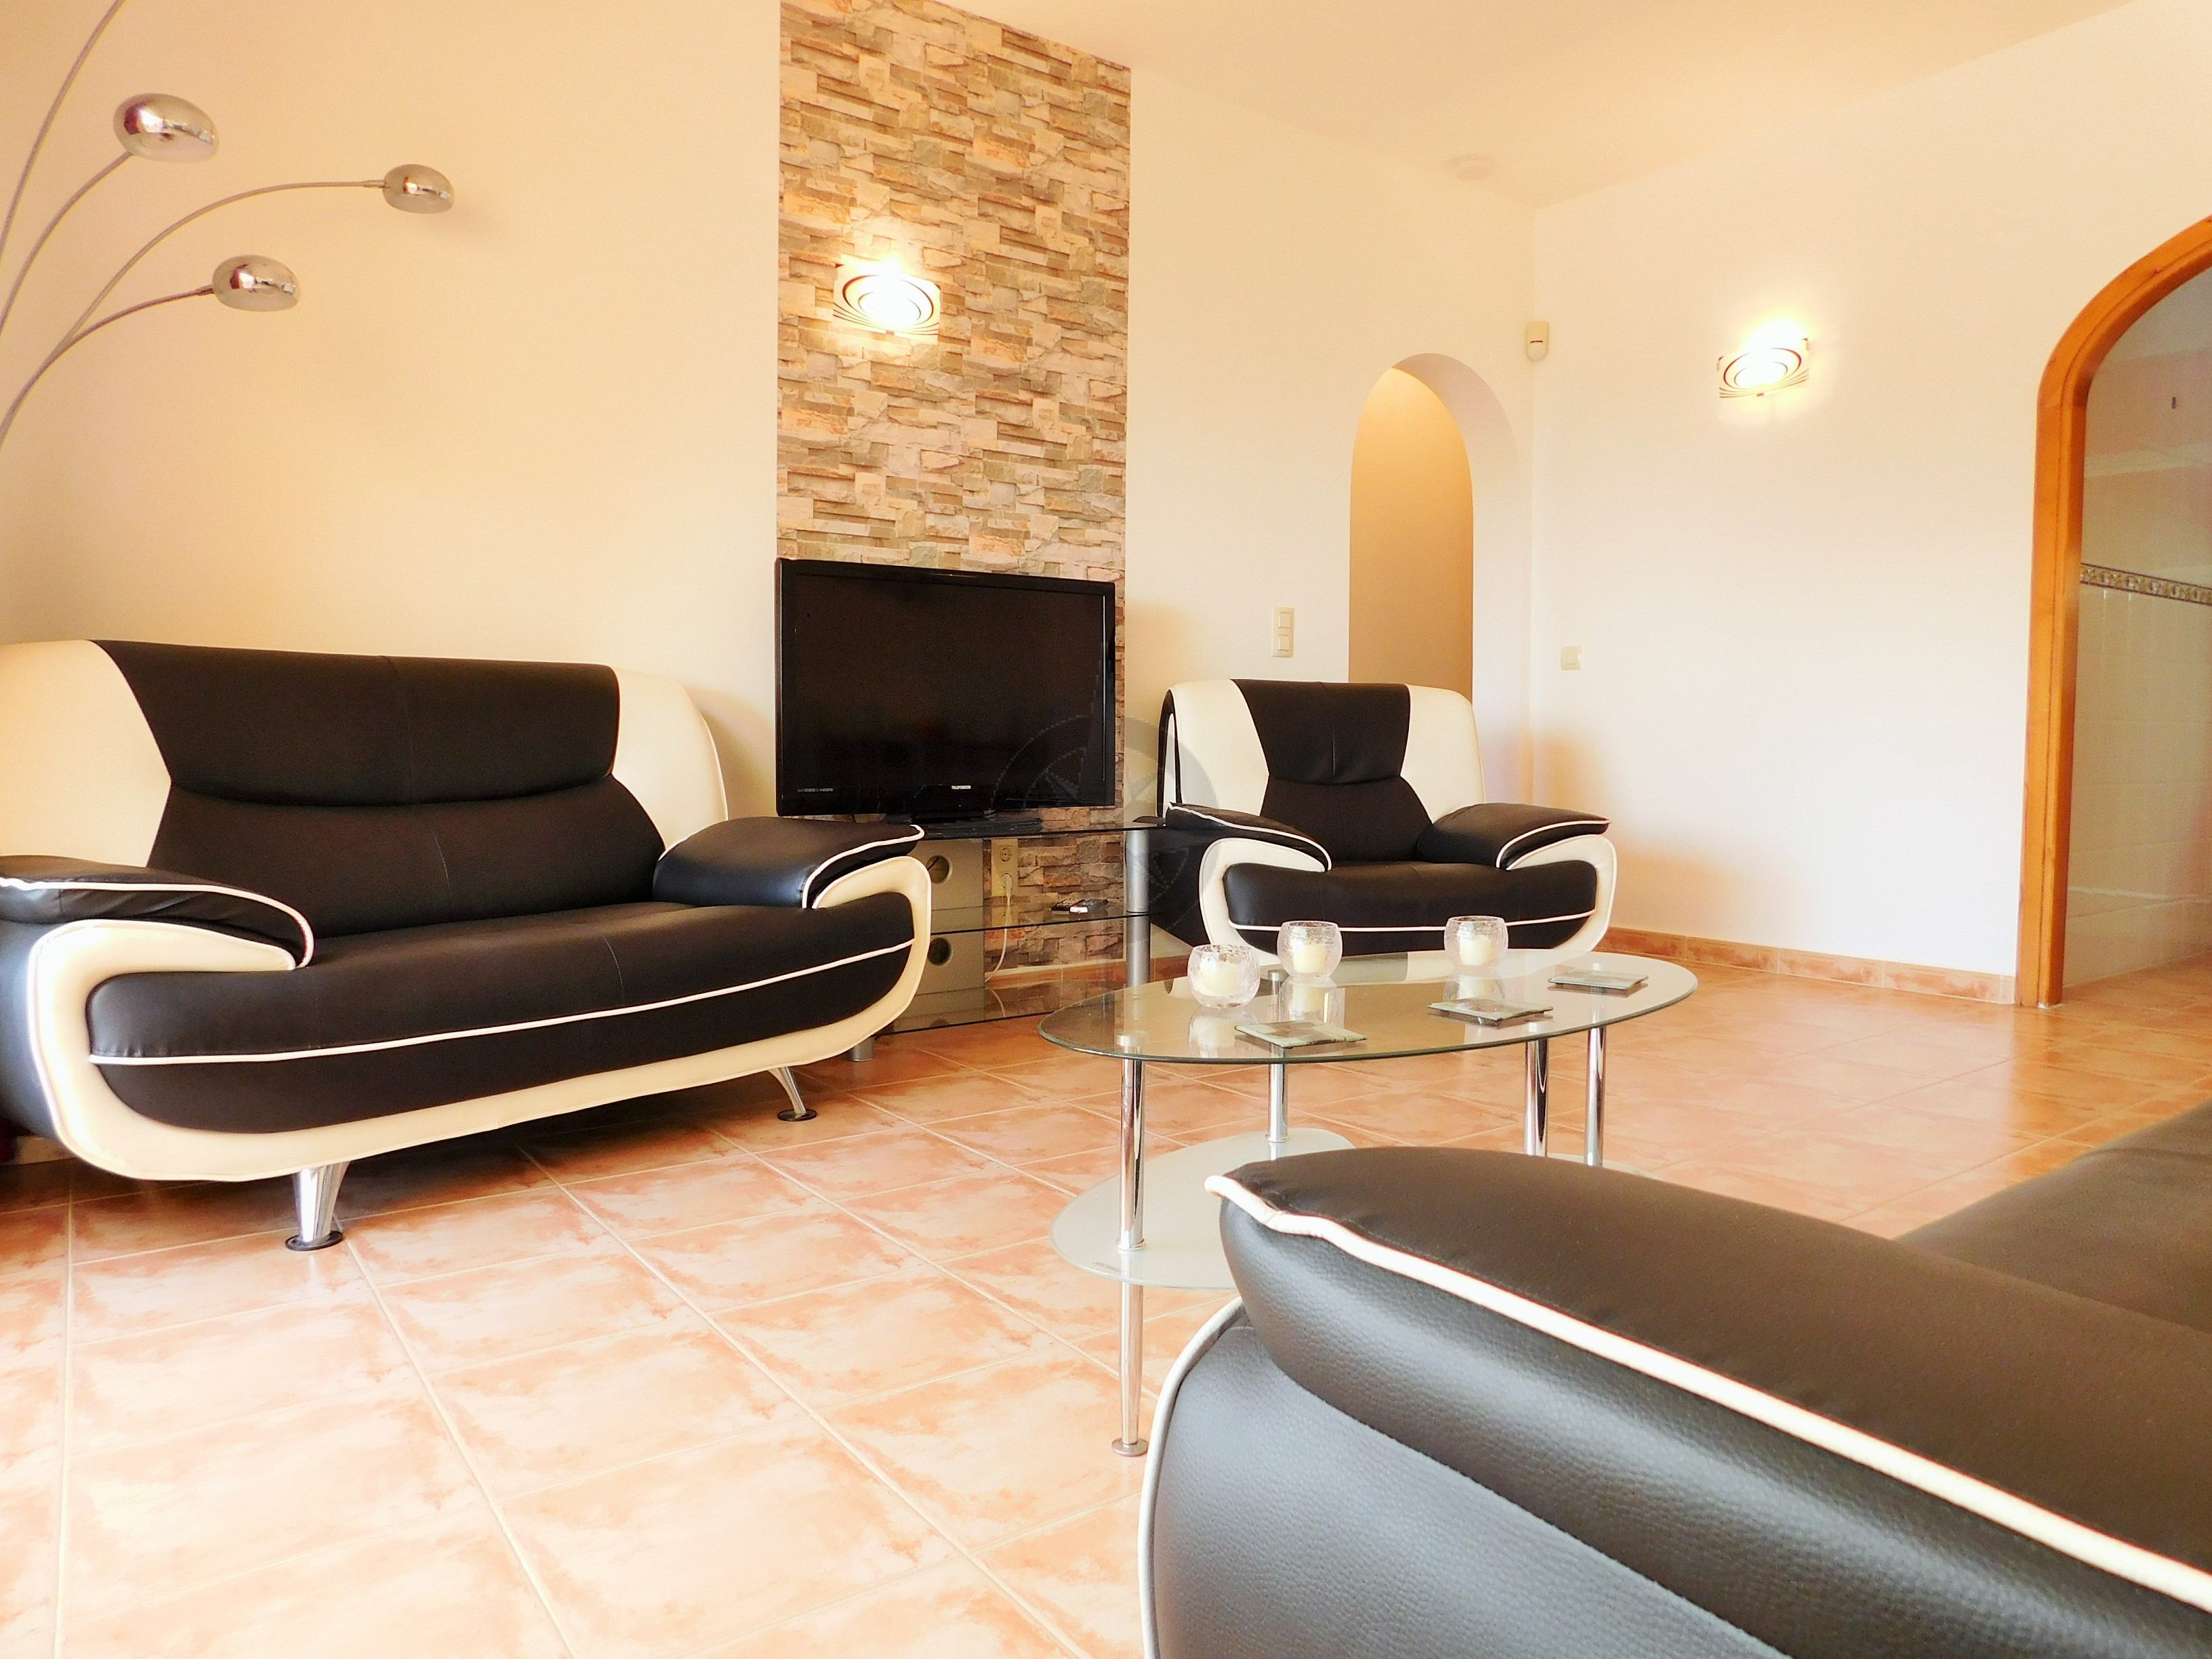 Lovely 2 Bedroom 1 Bathroom Apartment In Montecala, Cumbre Del Sol, Benitachell, Alicante